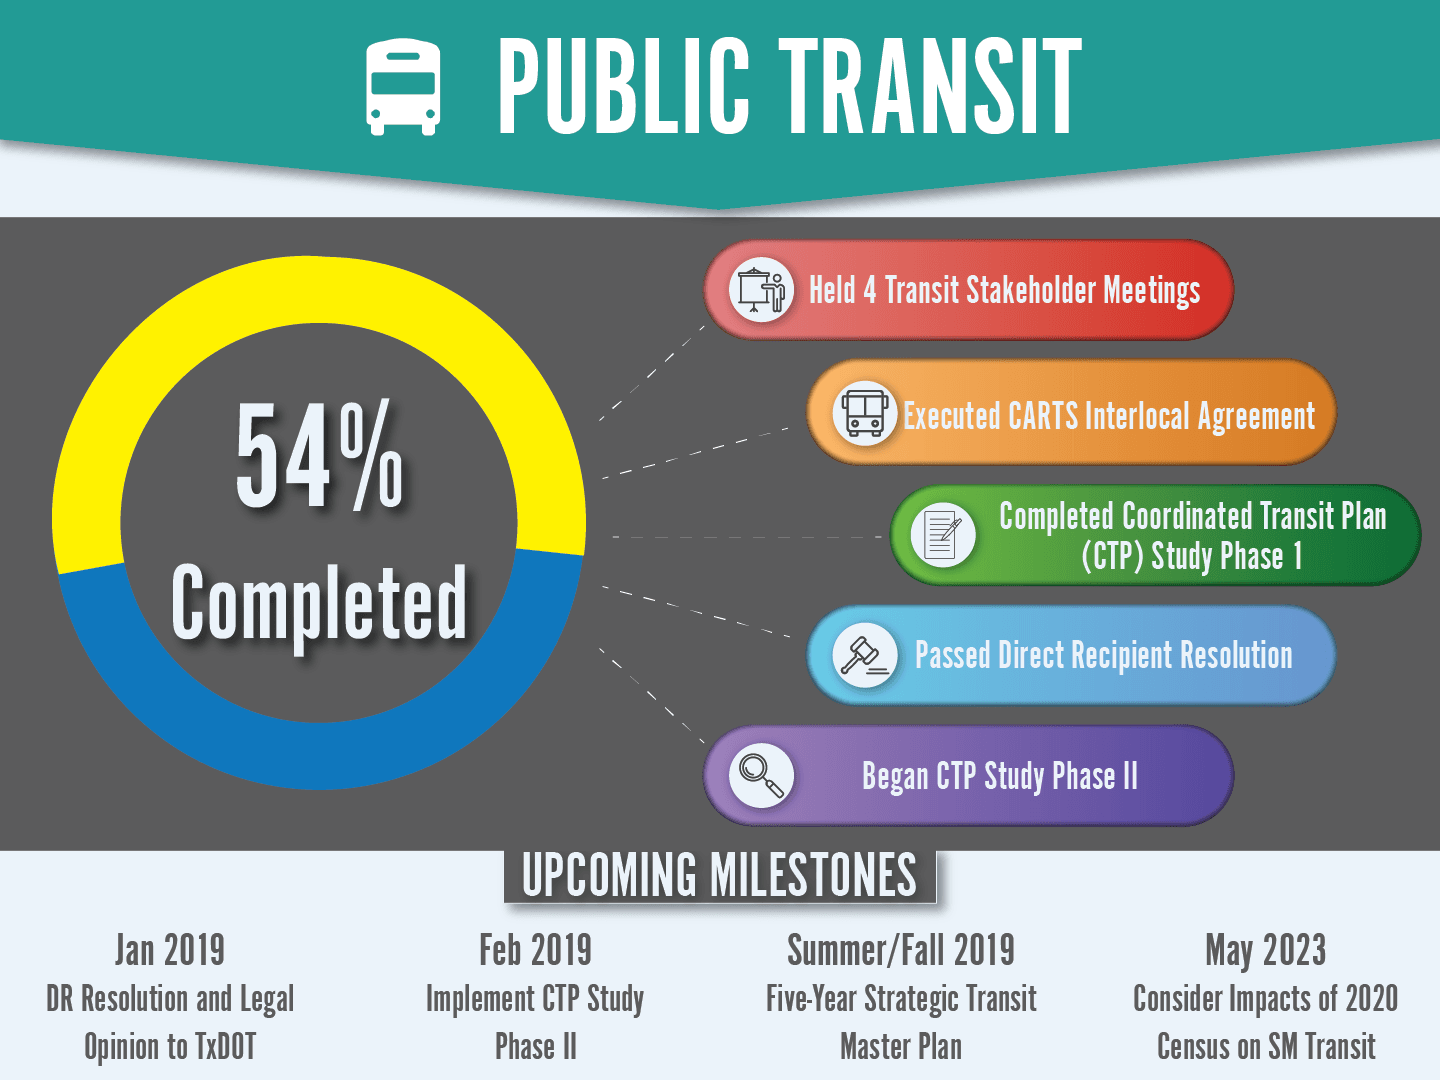 Public Transit Dashboard showing a 54% Completion Rate